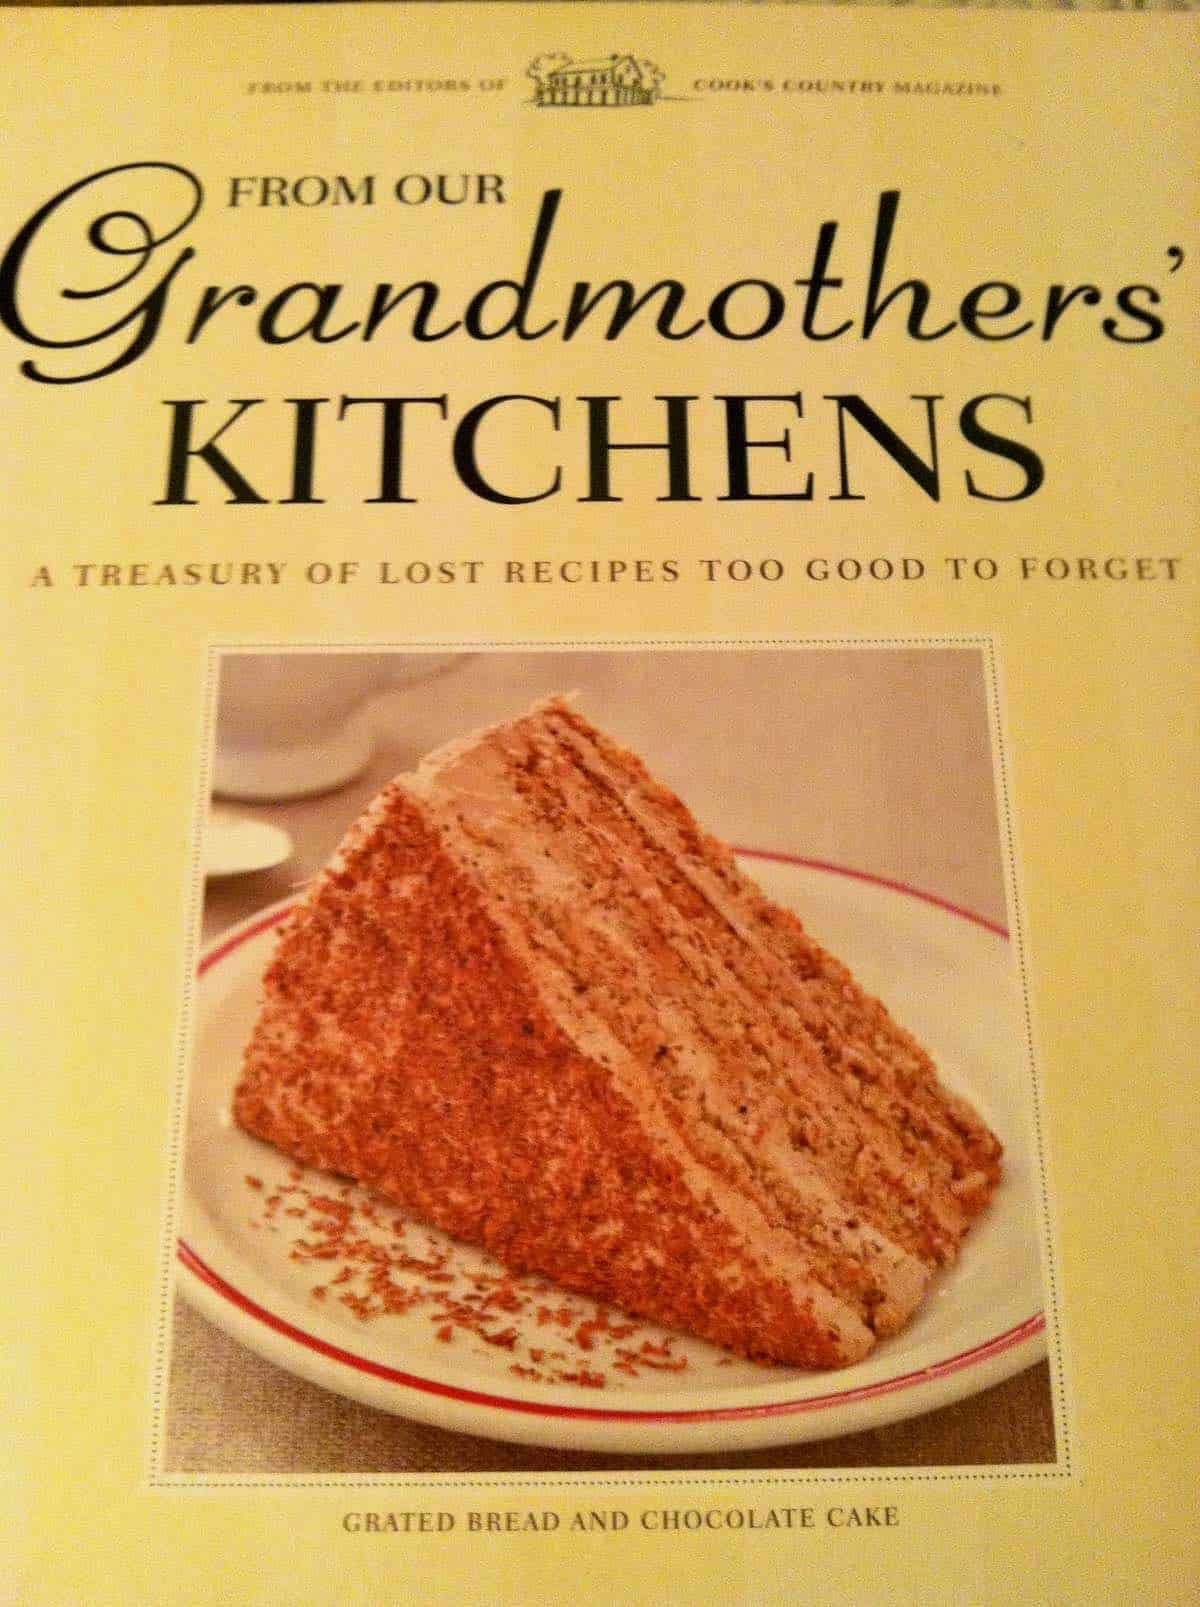 Grandmothers' Kitchen cookbook with my recipe on the cover